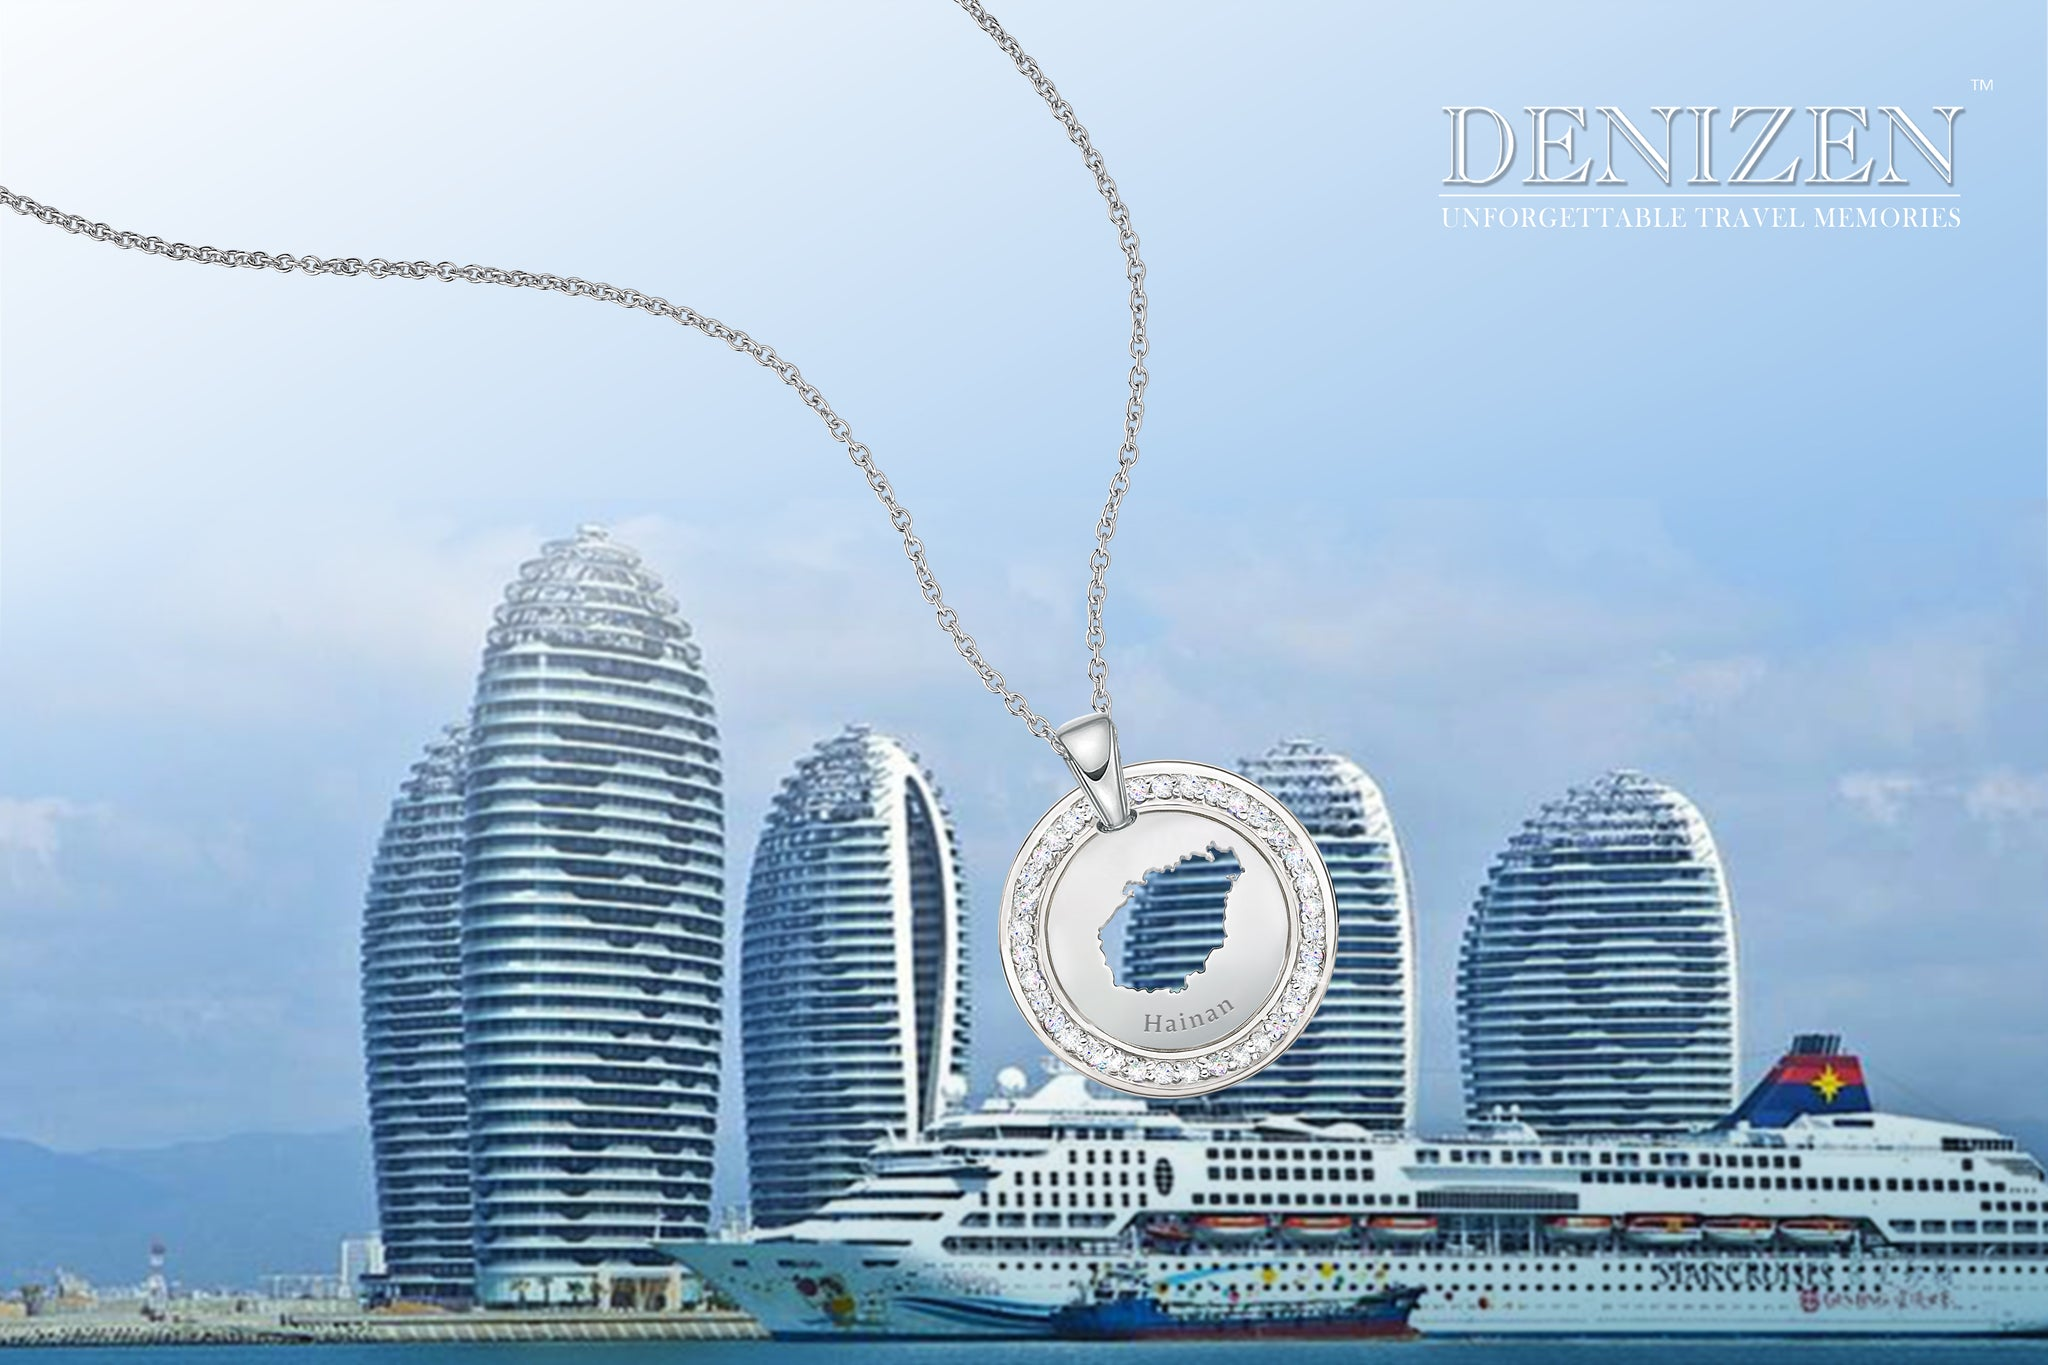 Denizen necklace of Hainan